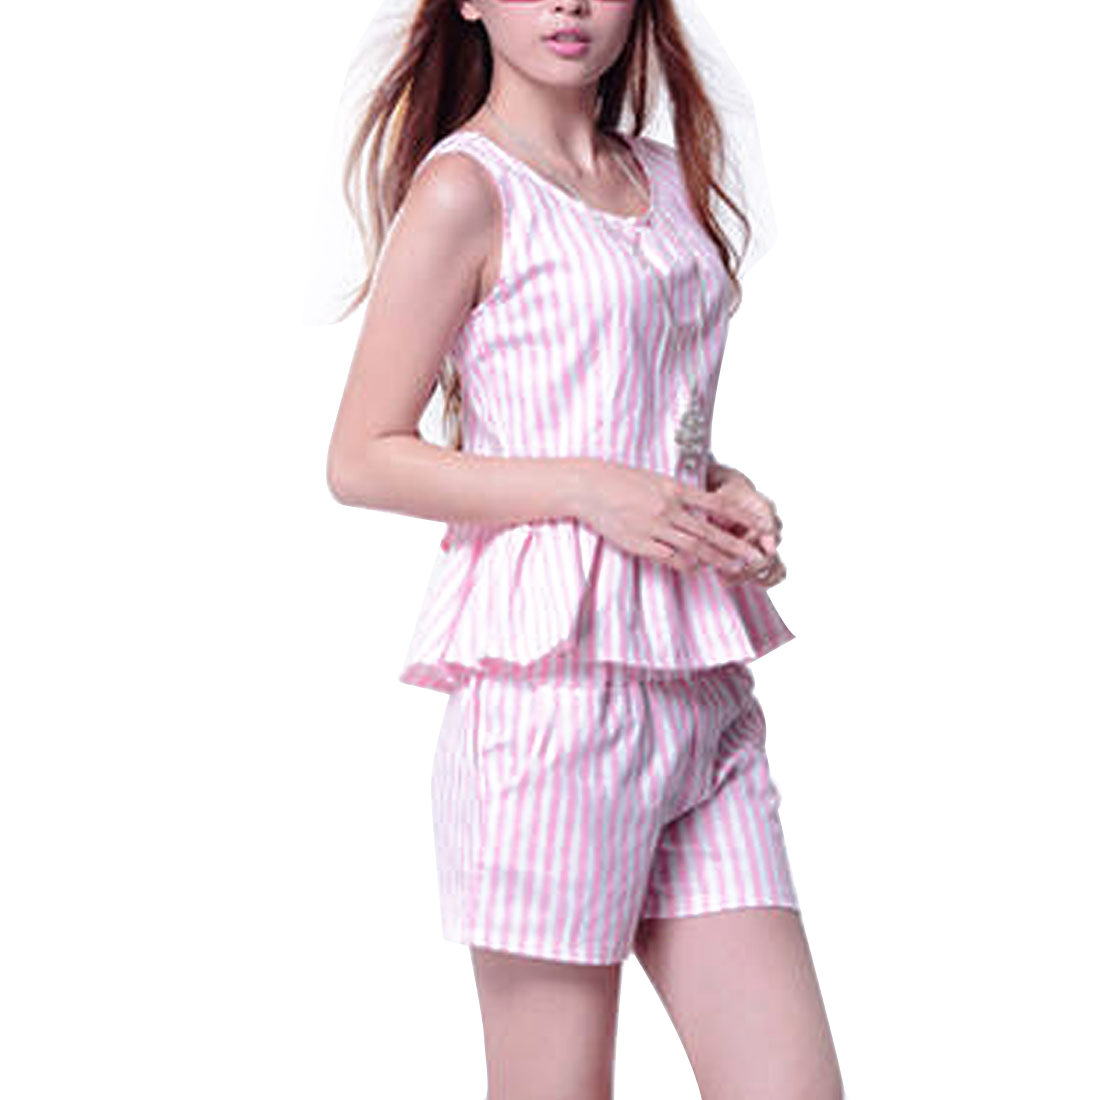 Ladies Stripes Print Sleeveless Top w Stretchy Waist Summer Shorts Pink XS